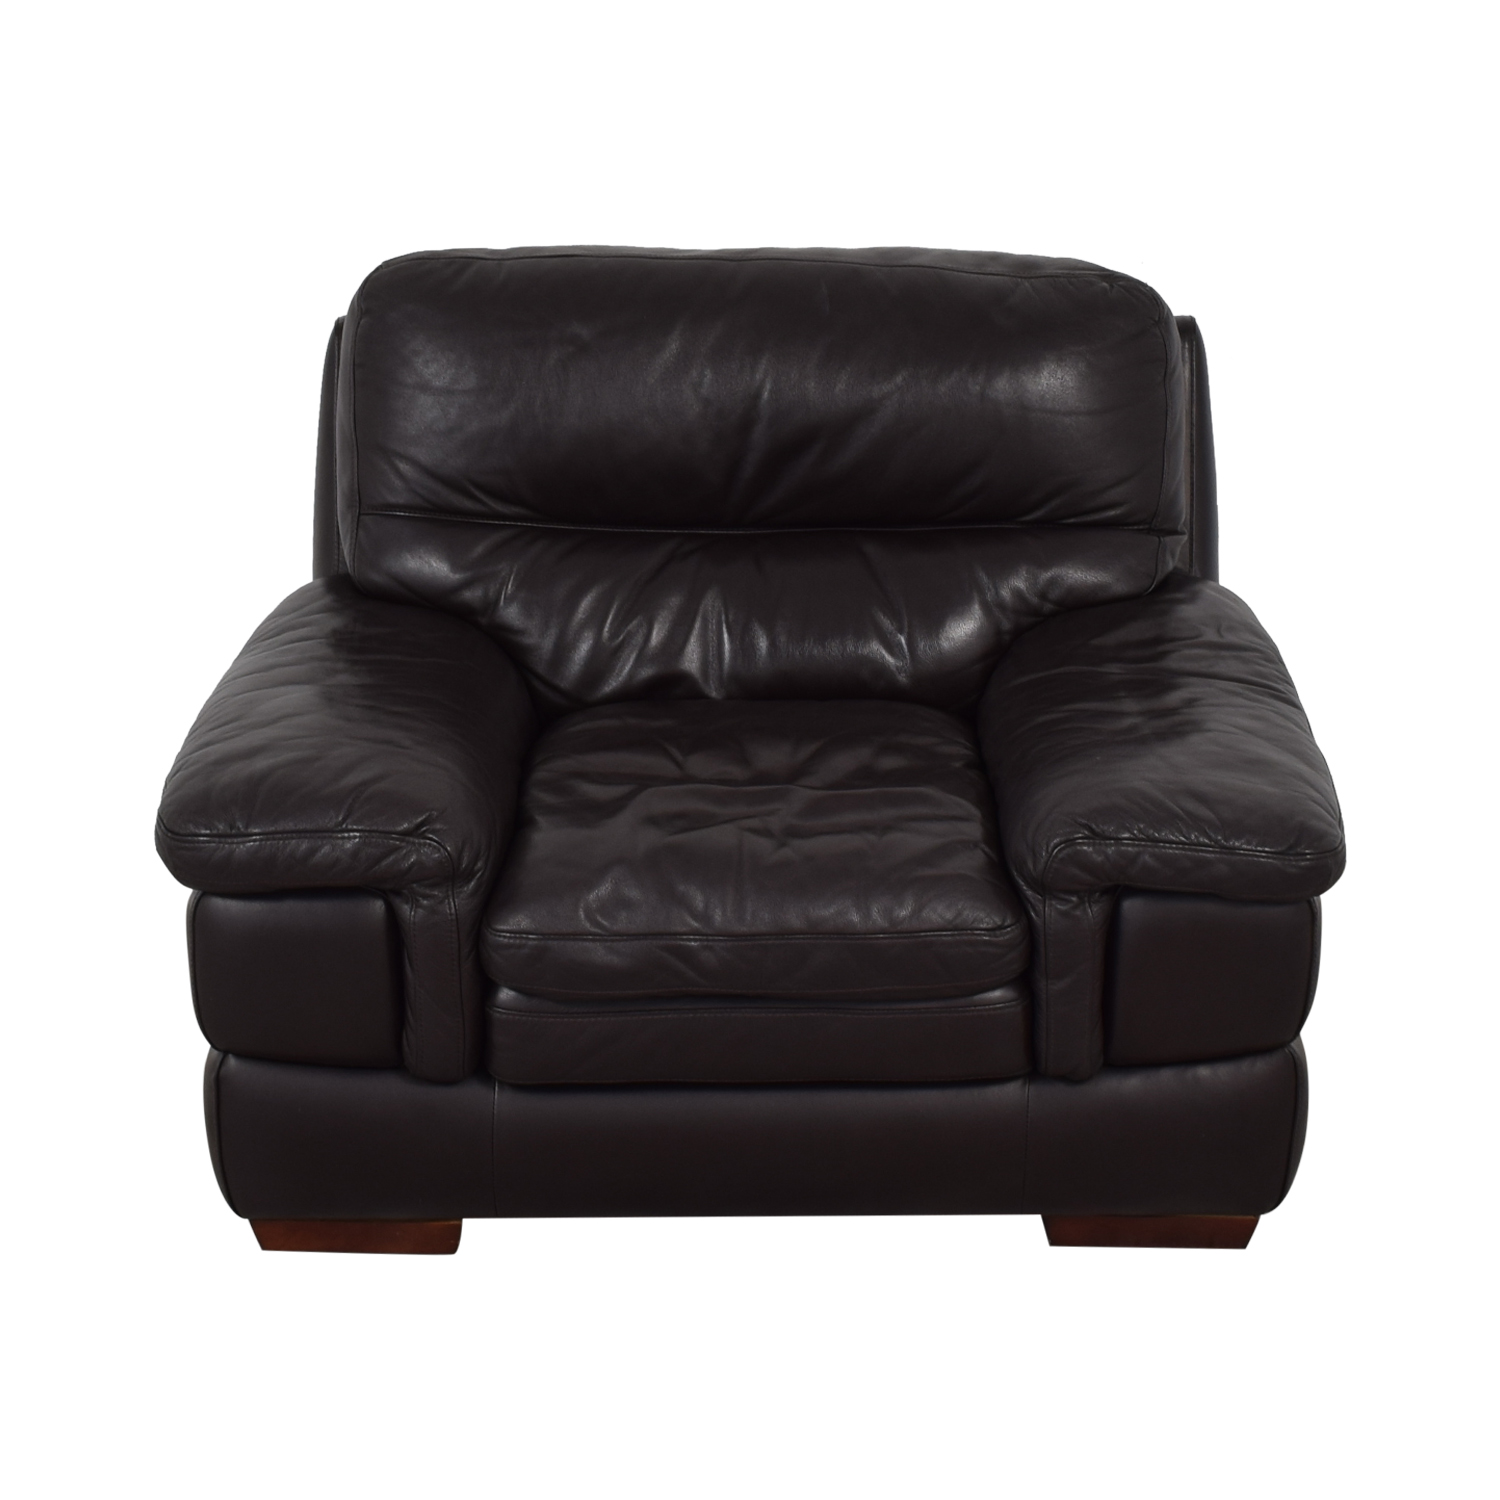 Bob's Discount Furniture Bob's Discount Furniture Brown Leather Accent Chair second hand